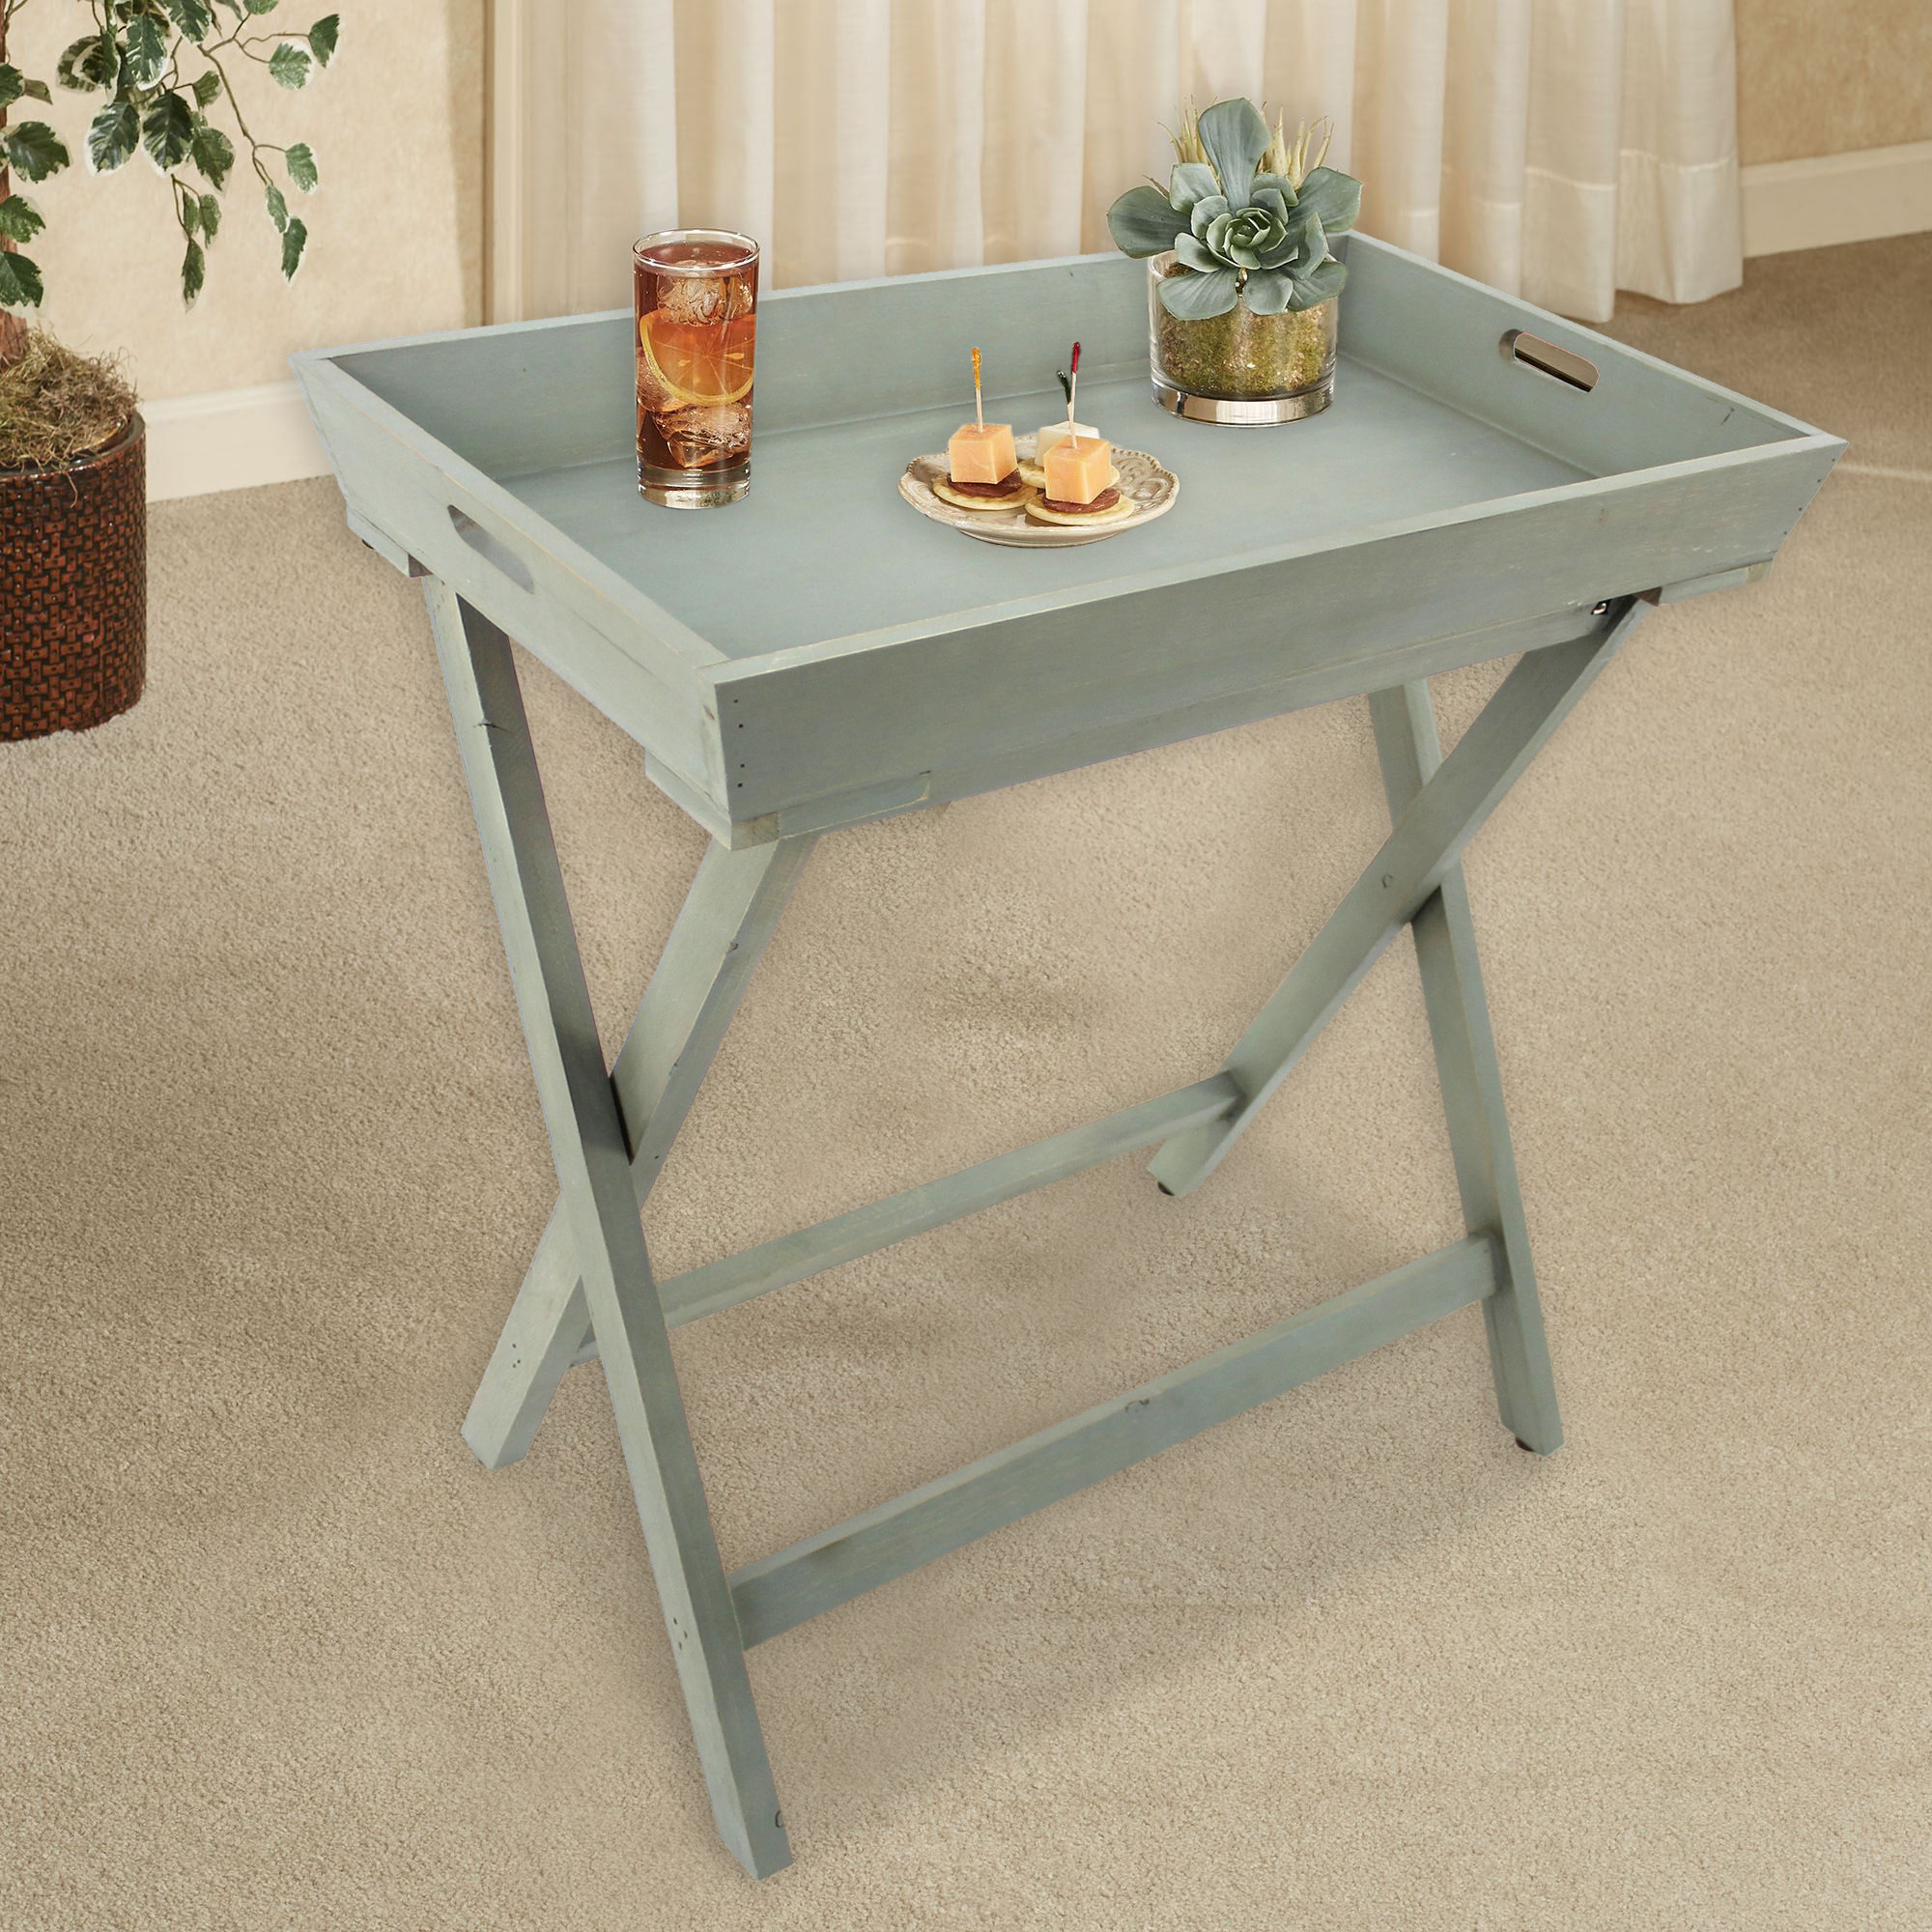 Coastal Light-blue Wooden Serving Table - Teton Home AF-035